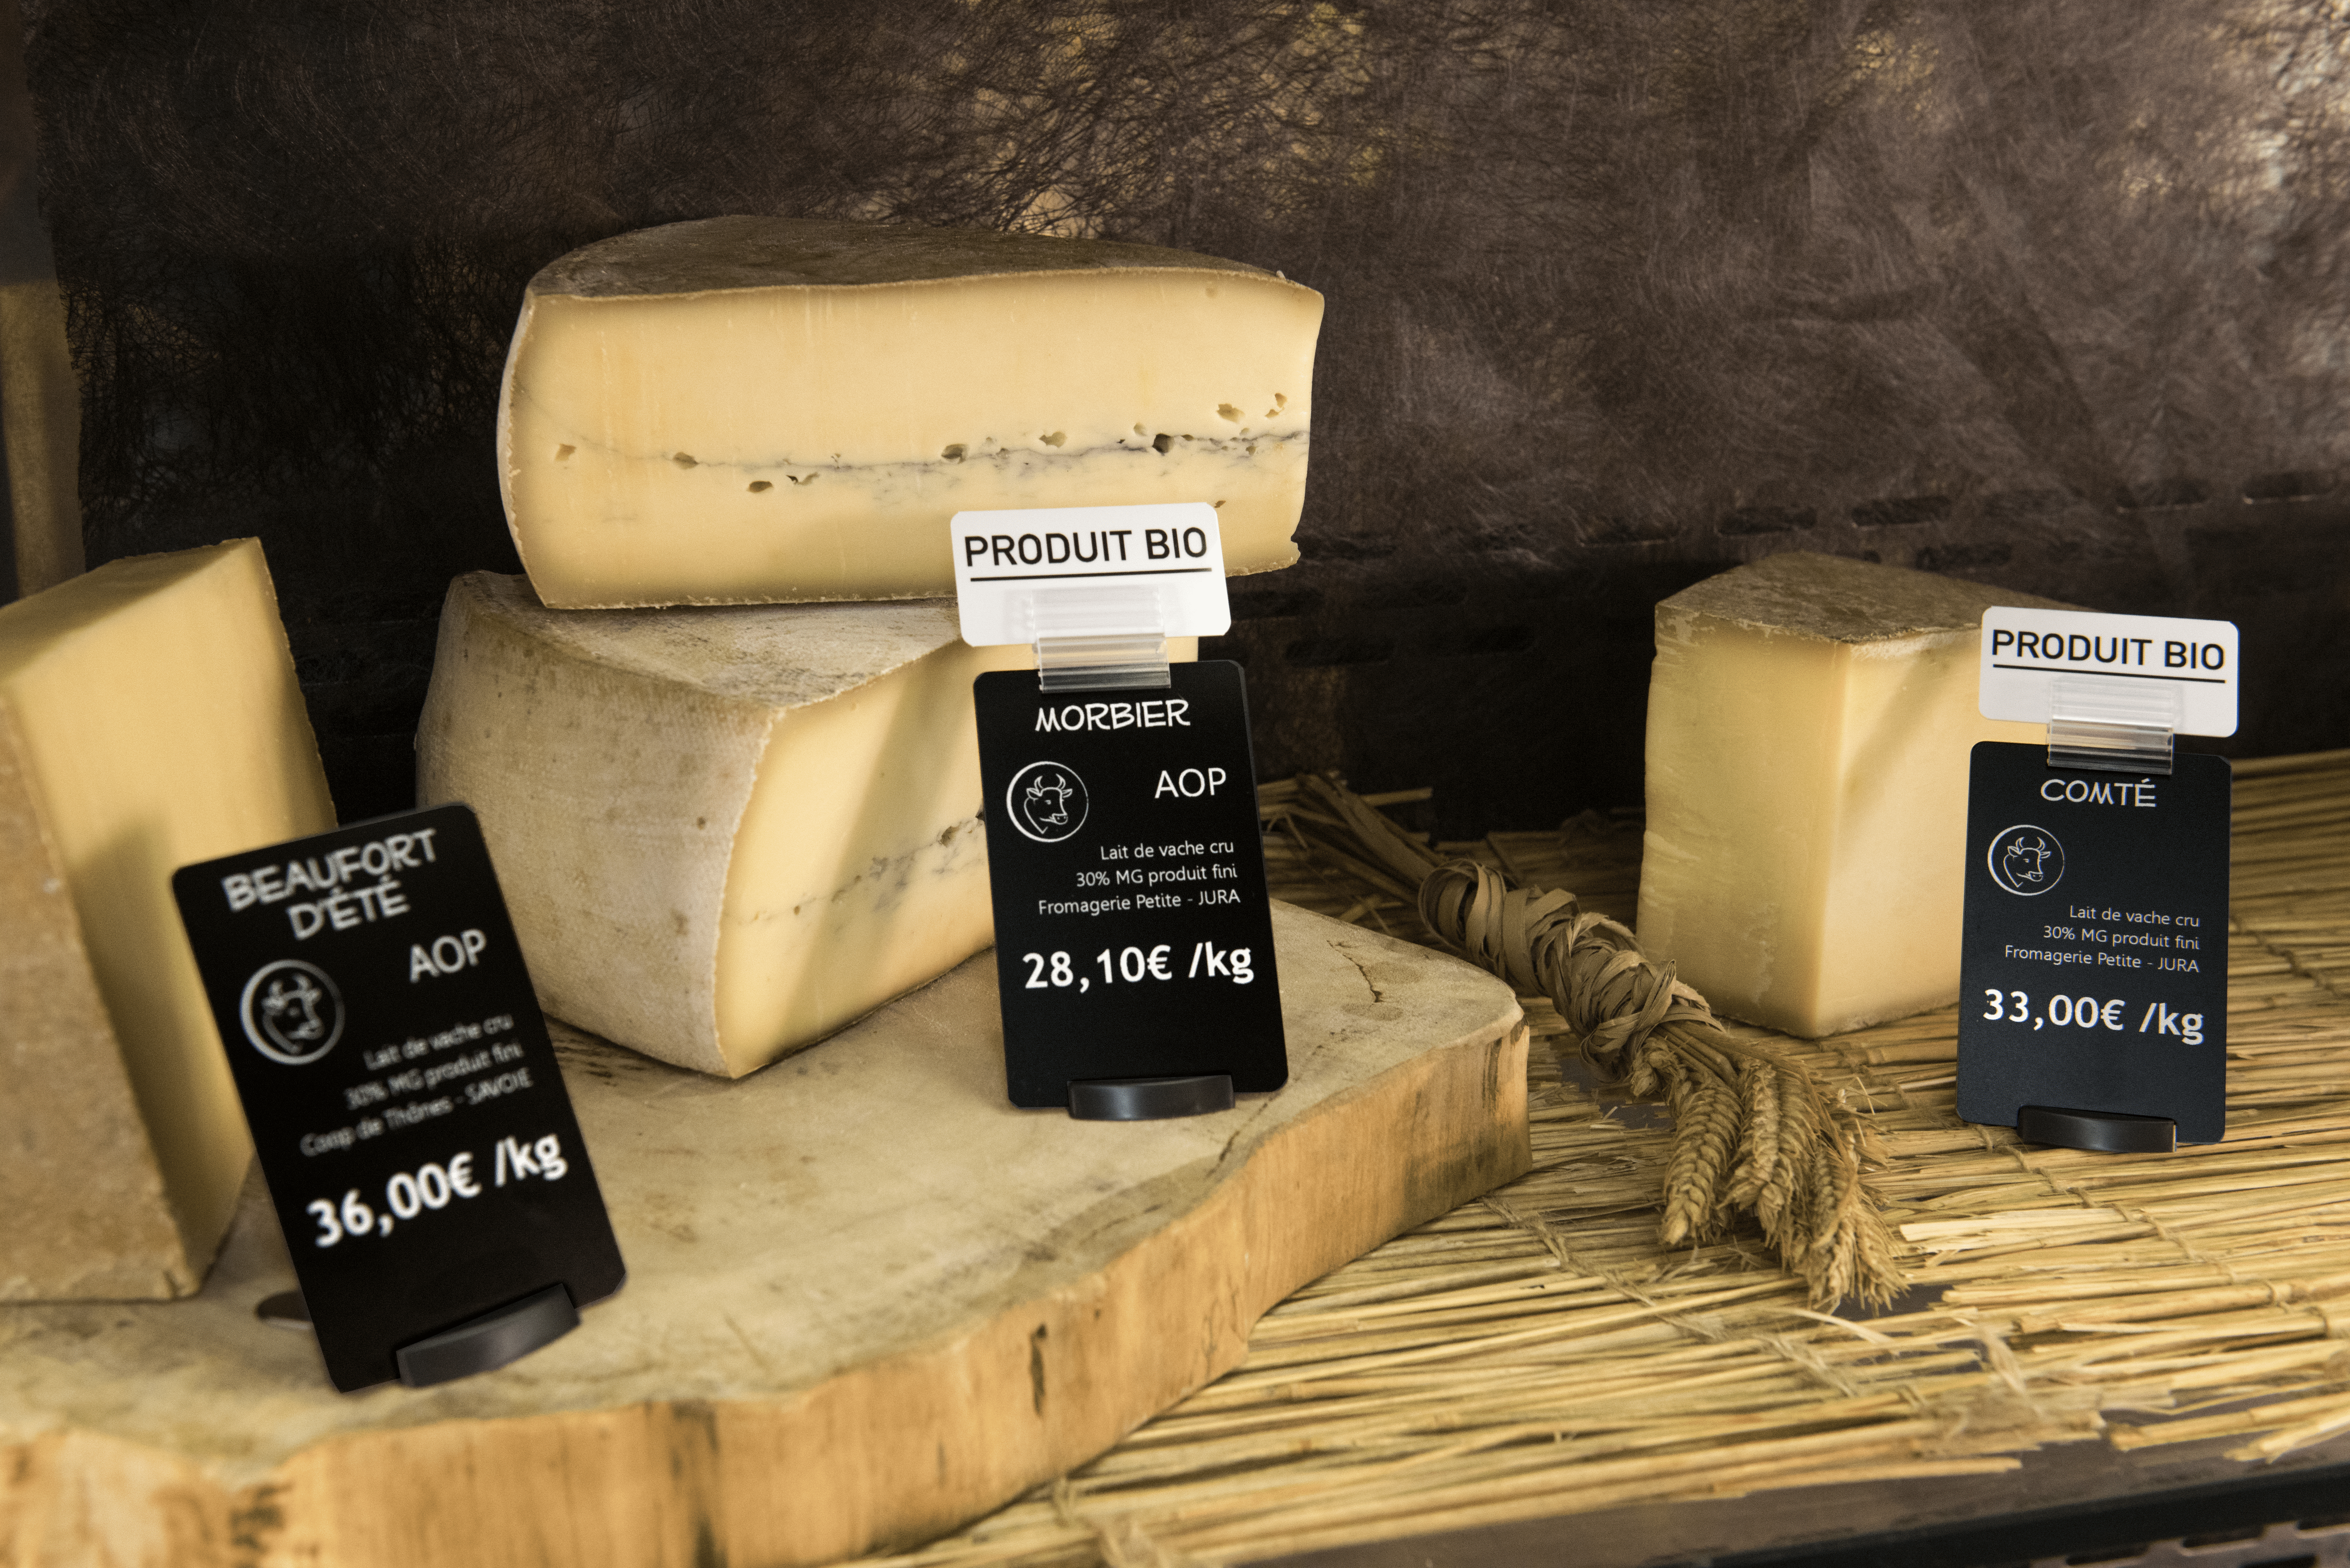 fromagerie_lahaye_0957_fre.png